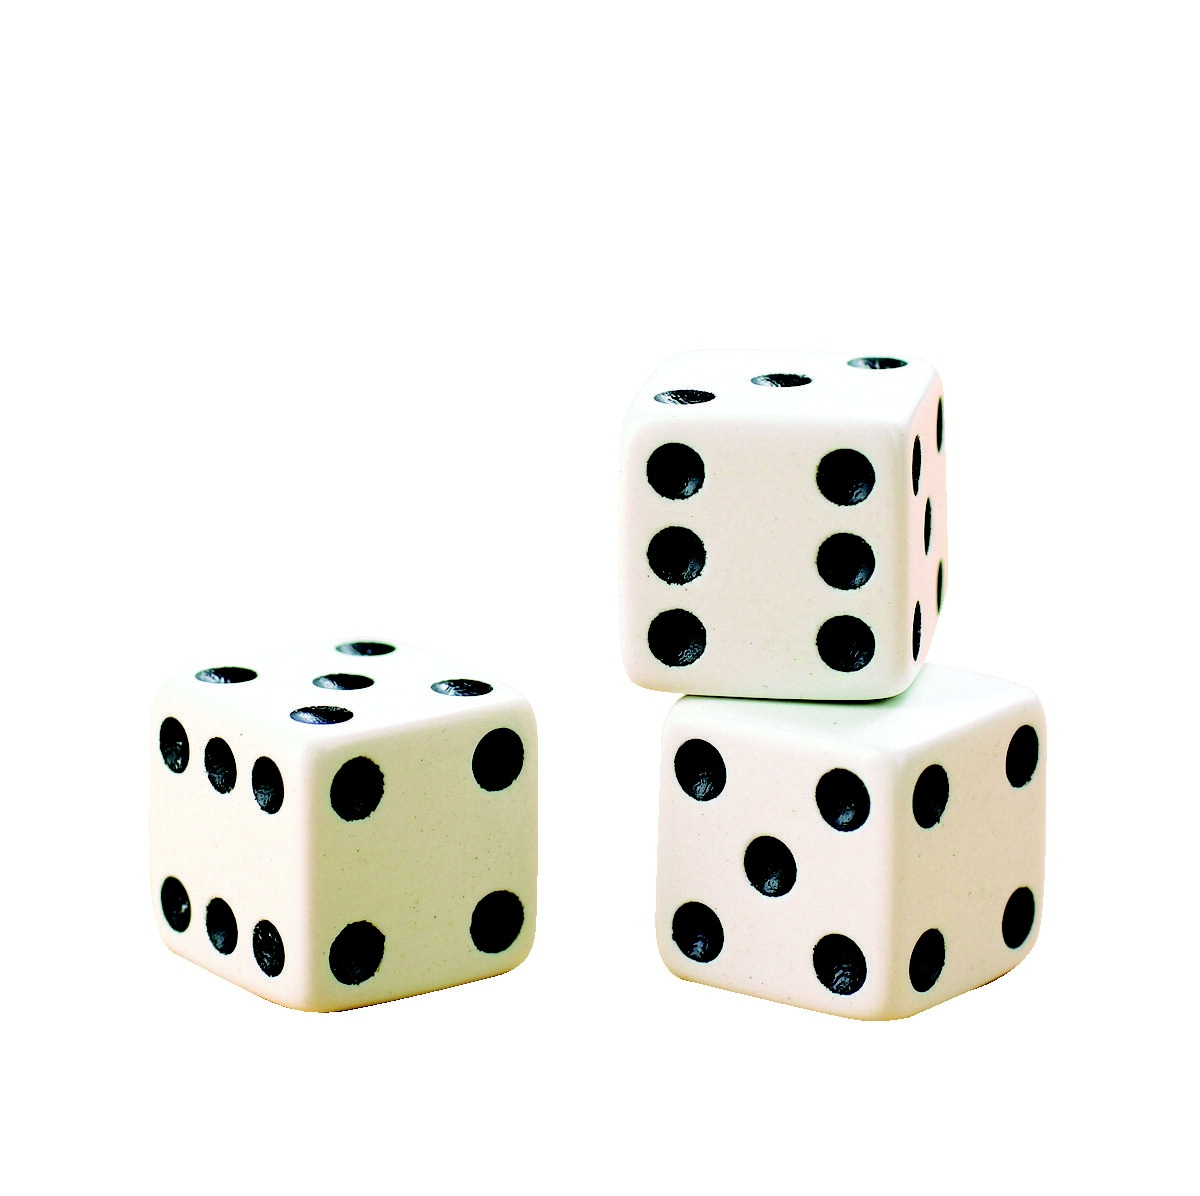 Toys Educational Toys Science & Exploration Sets - 282922 - School Specialty Dice Set; White With Black Dots 282922